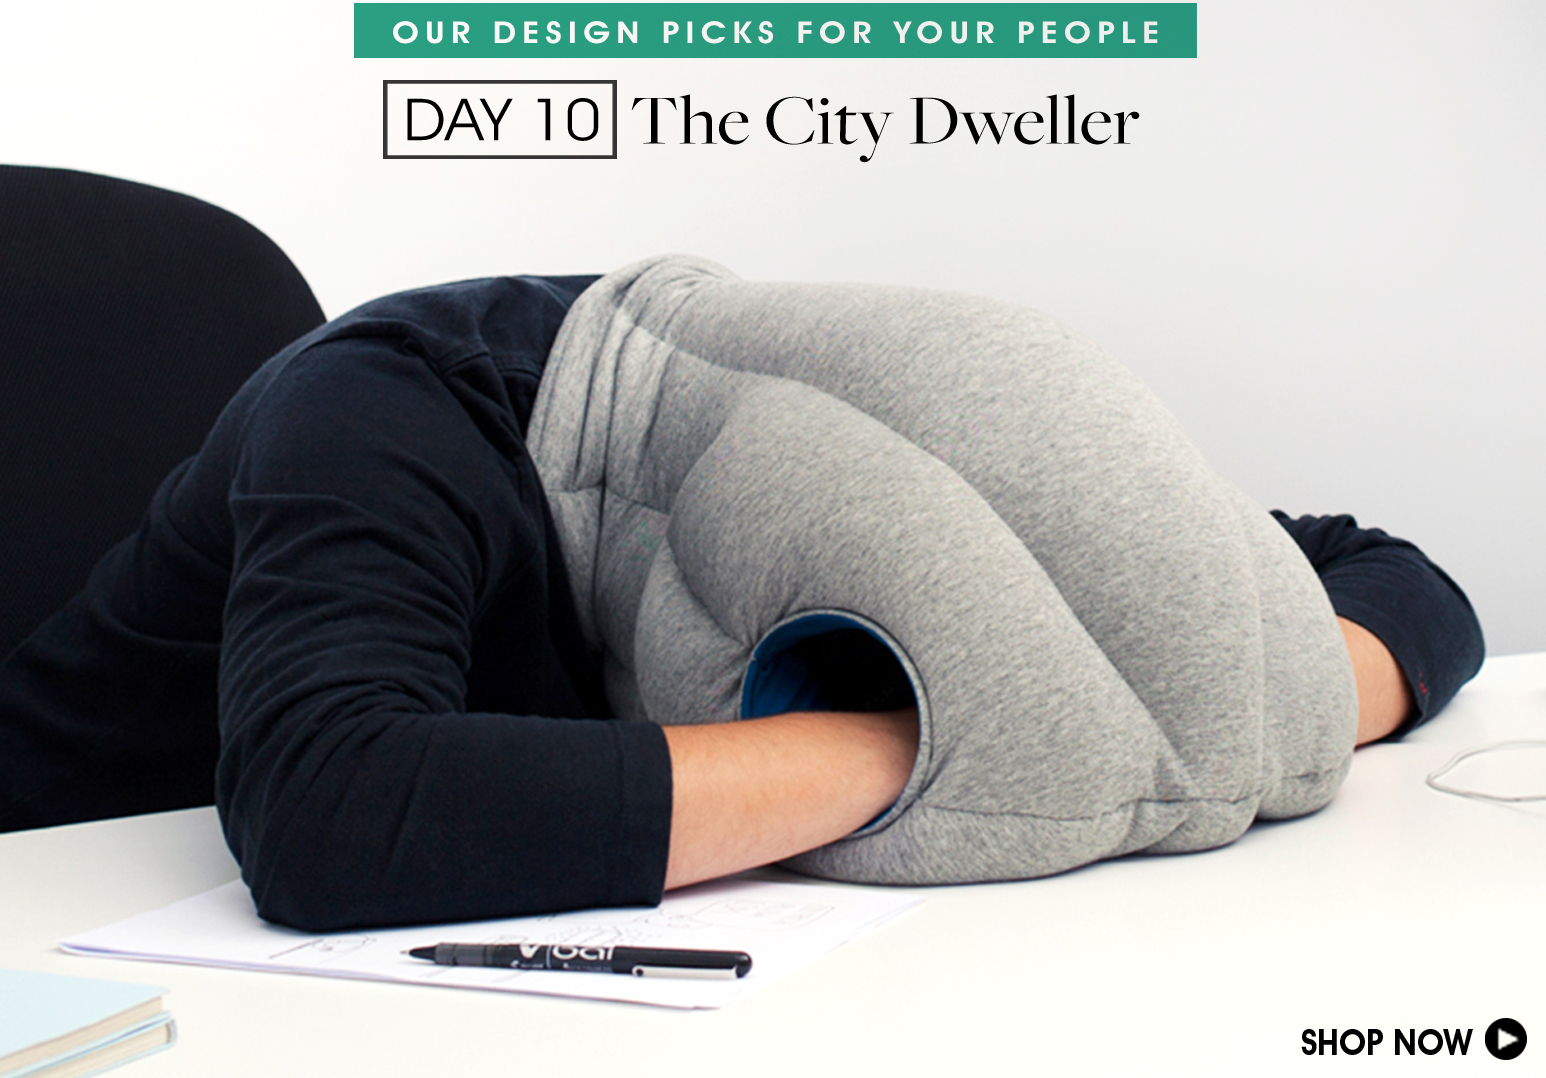 - 12 Days of Gifting - Day 10 The City Dweller